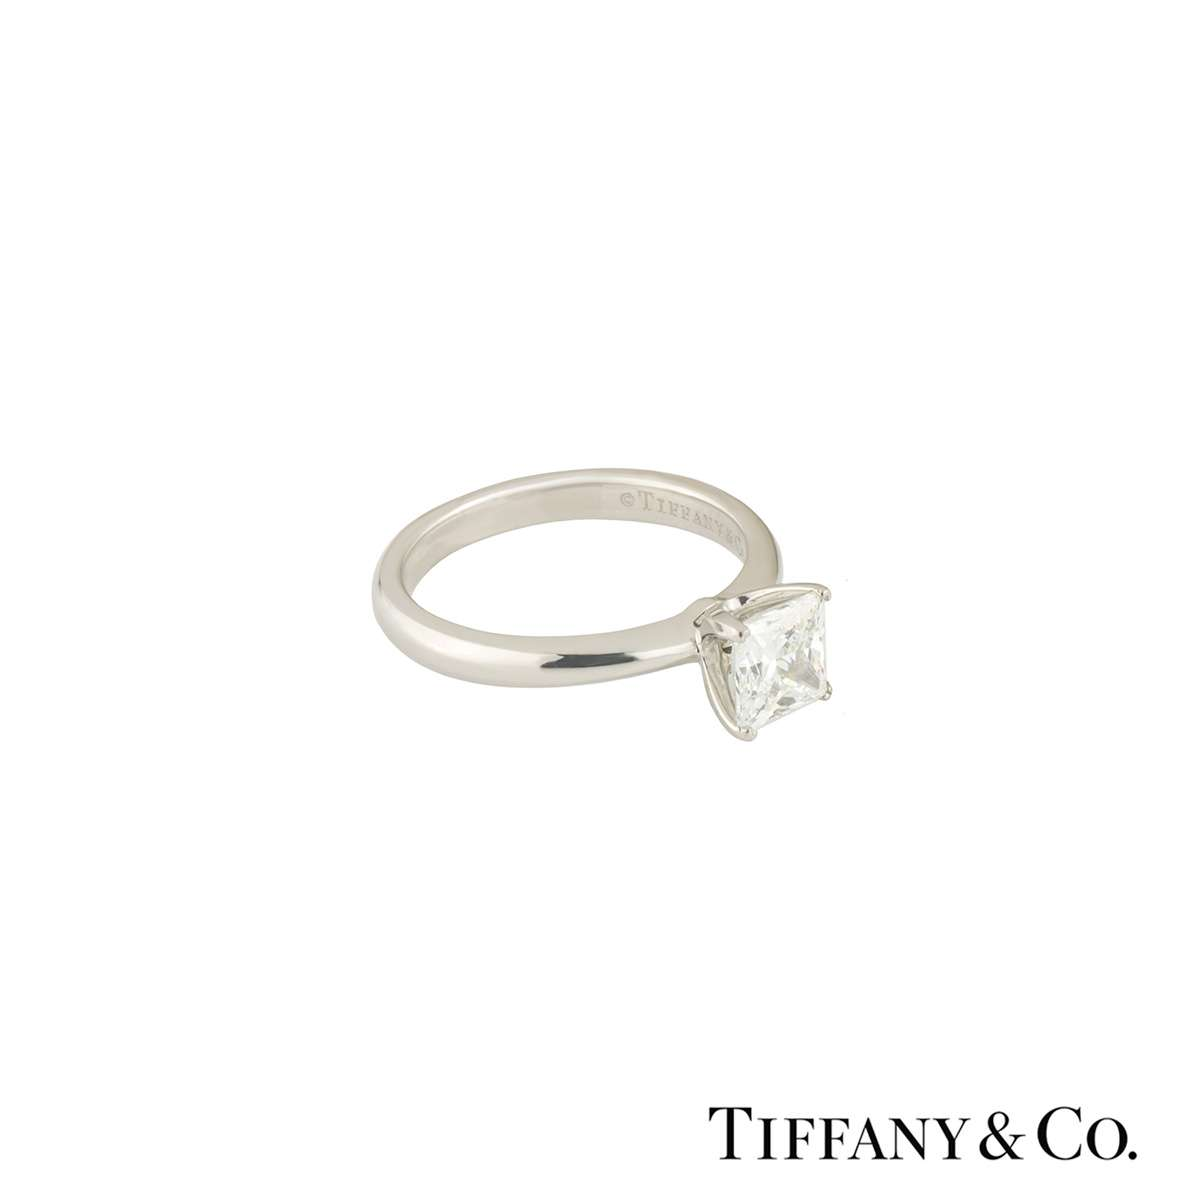 Tiffany & Co. Platinum Princess Cut Diamond Ring 1.05ct G/VVS2